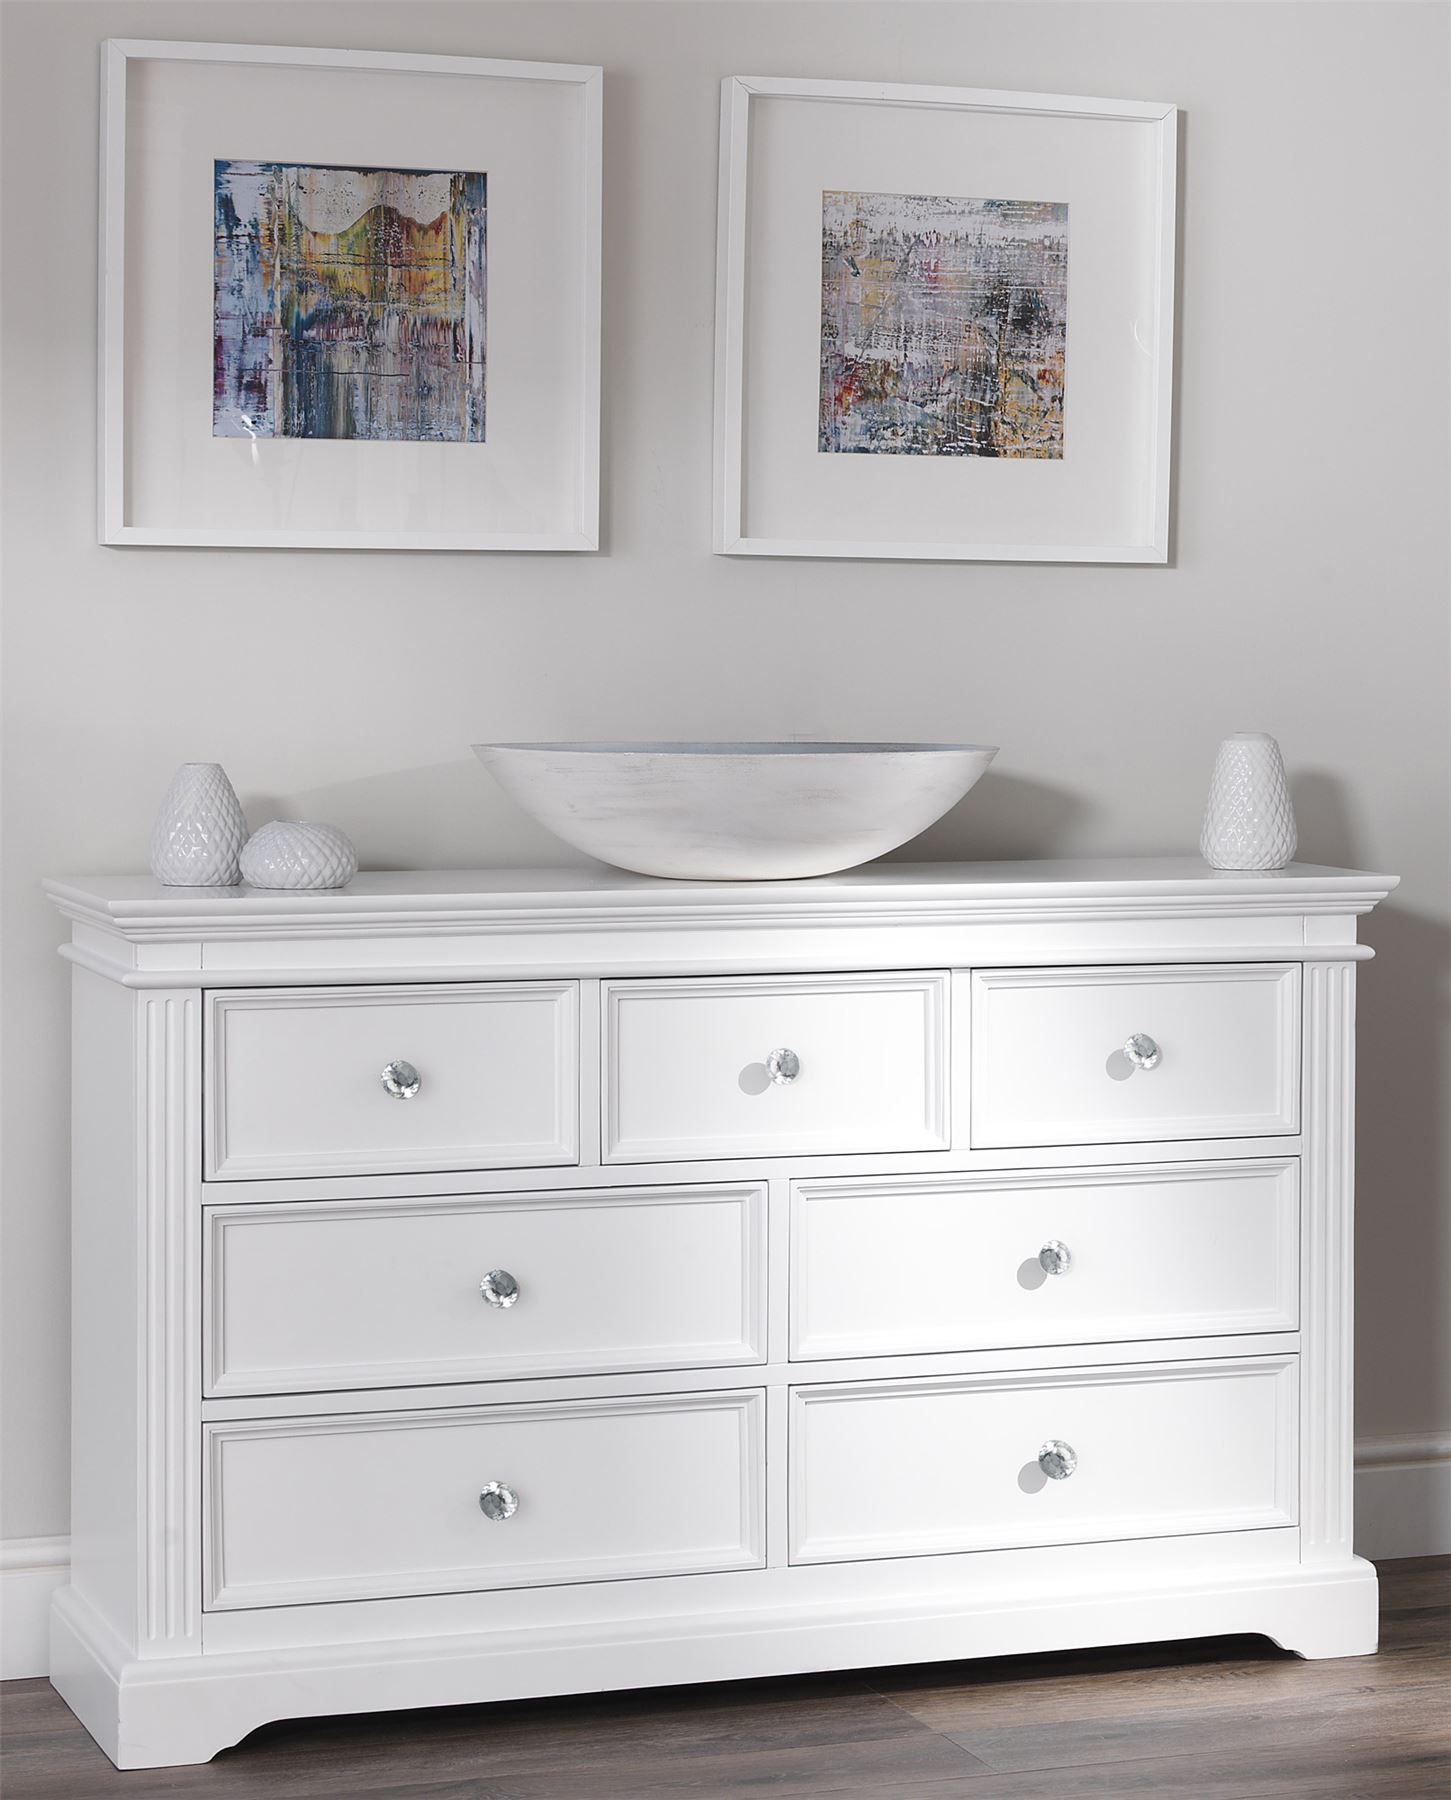 Details About Gainsborough Large White Chest Of Drawers 7 Drawer Dresser Crystal Knobs Solid